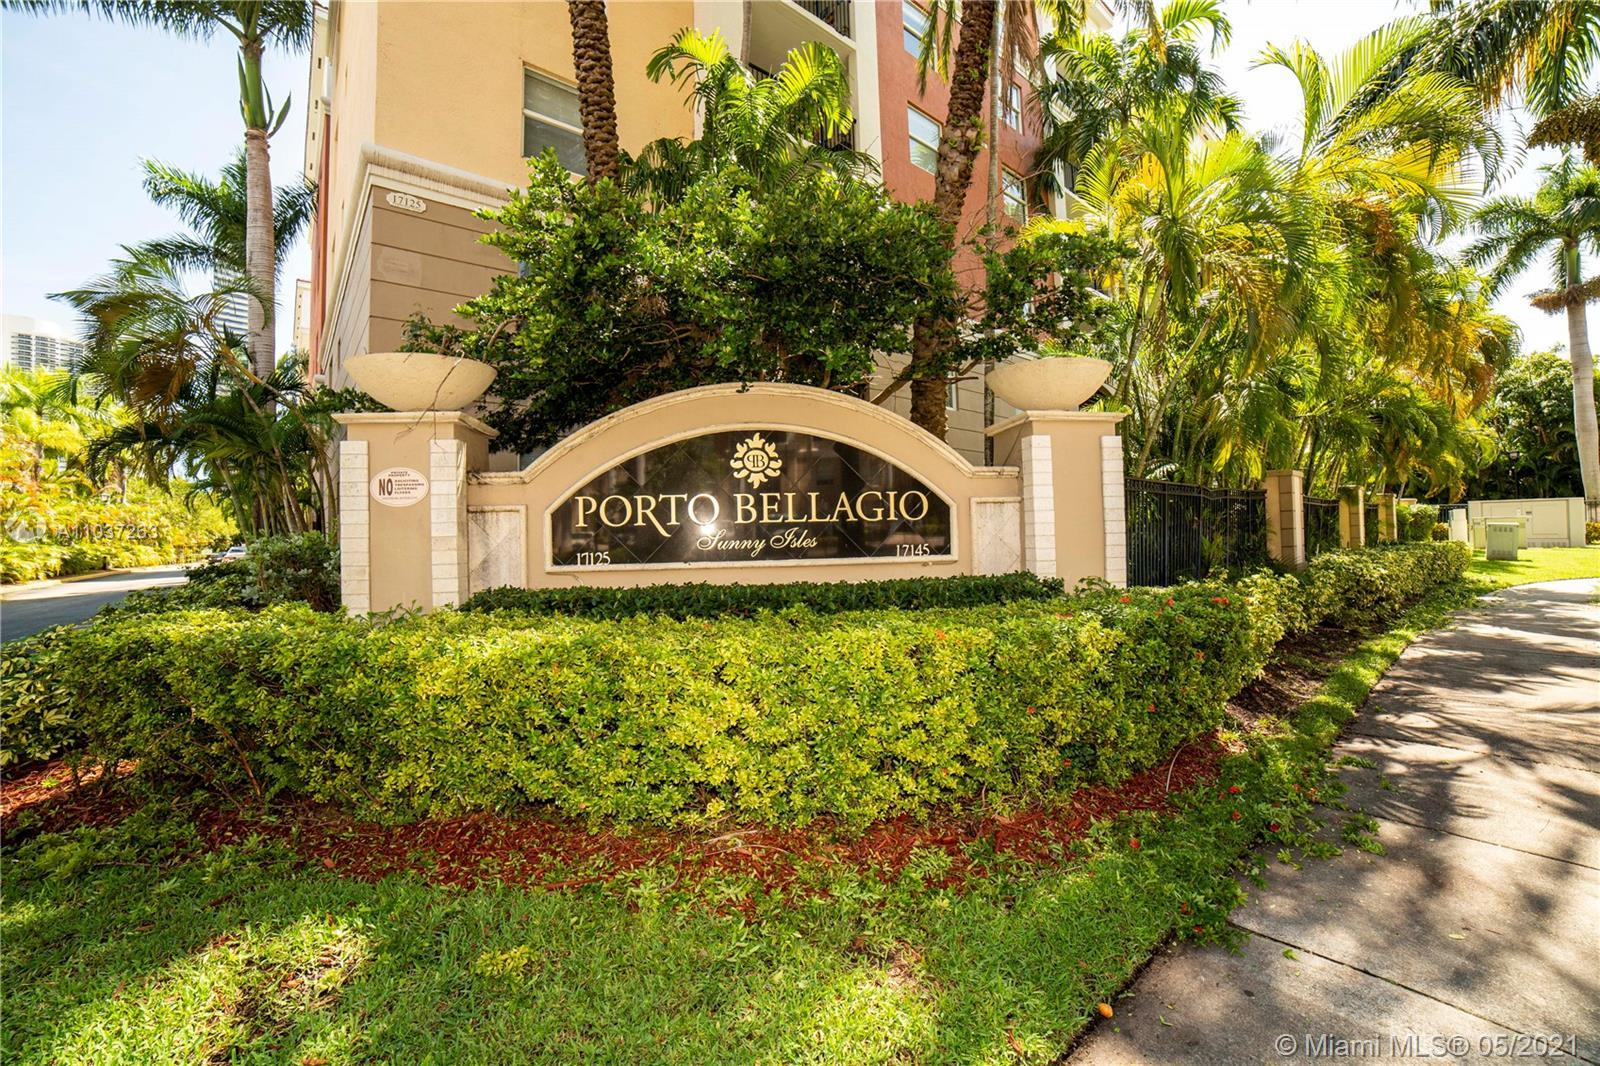 2 BR 2 BA LARGEST FLOORPLAN.  VIEW TO POOL AND BAY FROM BALCONY.  TILE THROUGHOUT.  INC 2 COVERED PA